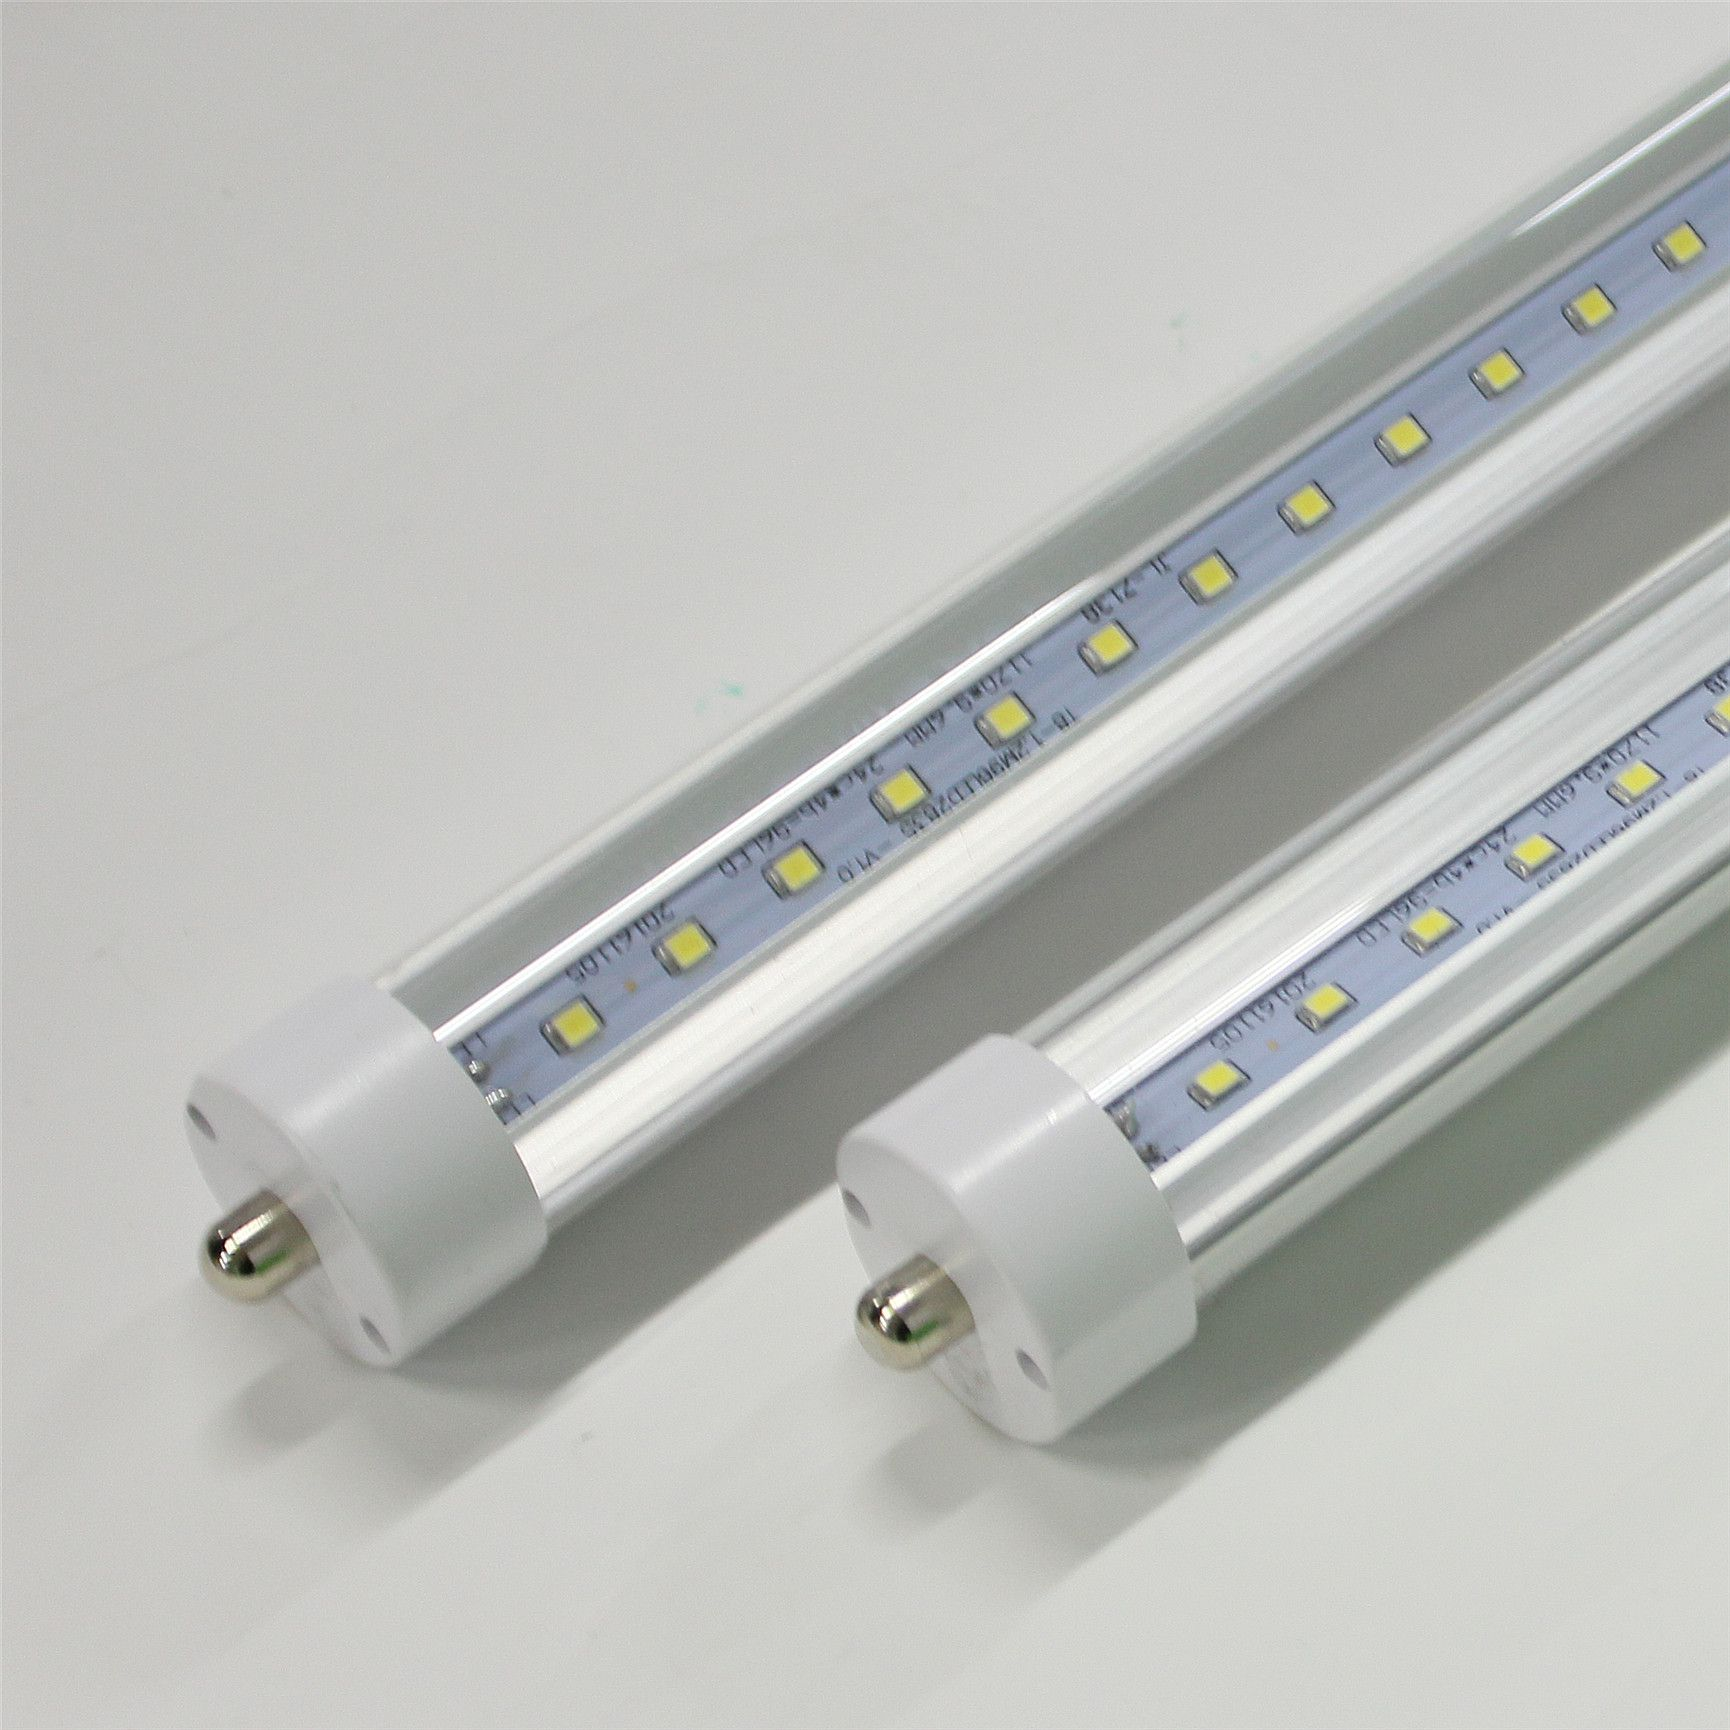 T8 LED Tube Light FA8 R17D Rotate 8ft 6ft 5ft 4ft 3ft 2ft 36-10W ...